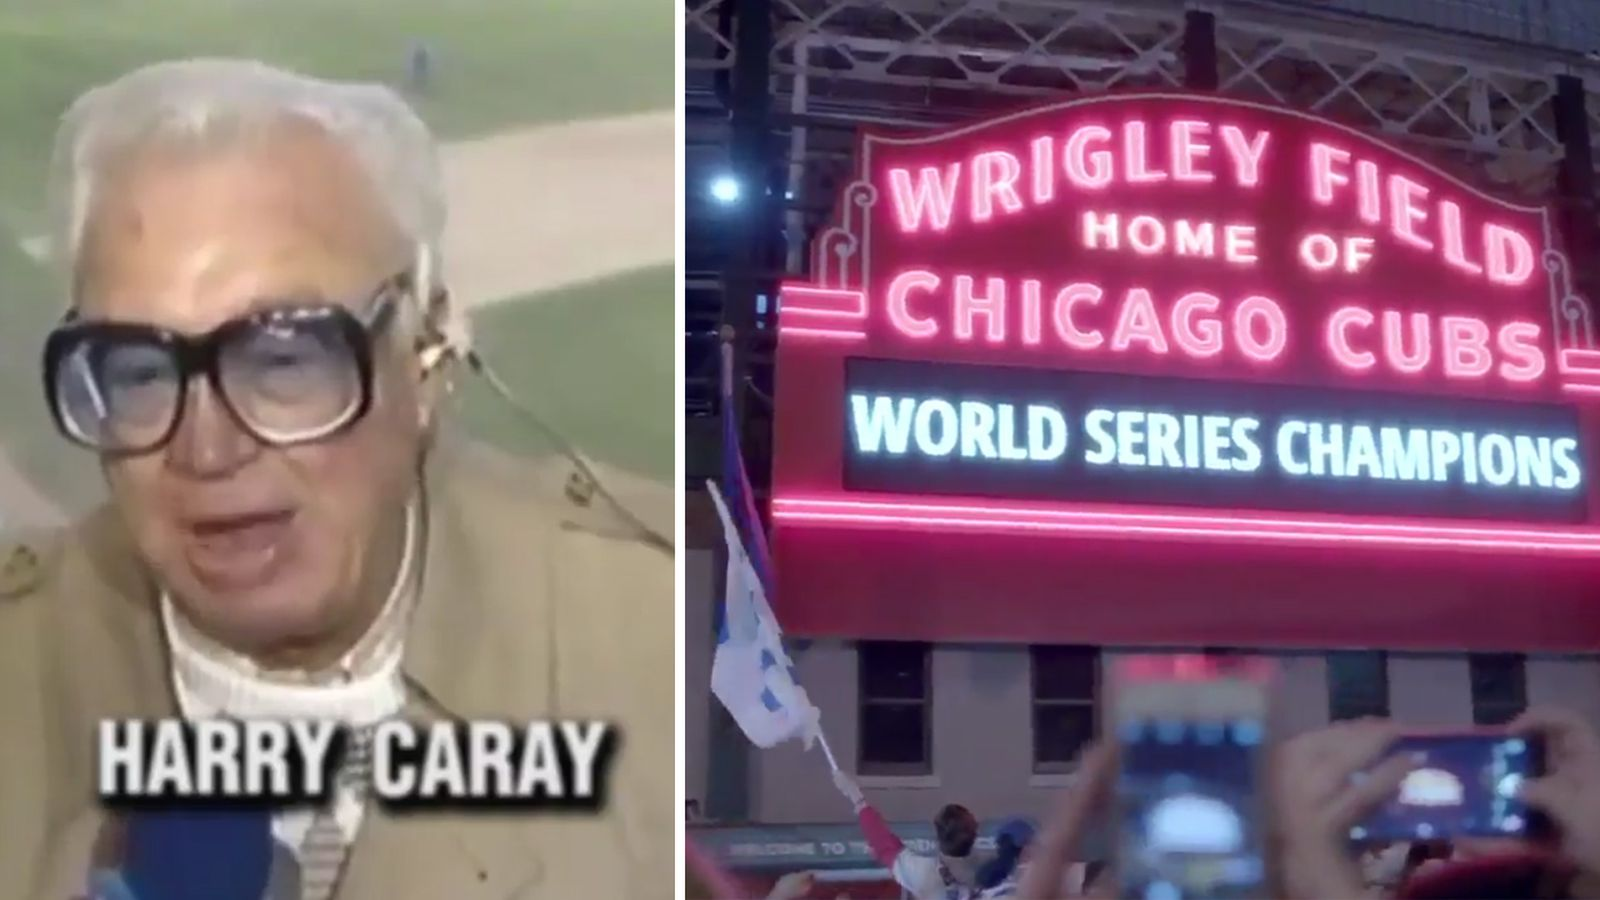 Atlanta Hawks Iphone 6 Wallpaper Harry Caray Calls The Cubs Final Out Of The World Series